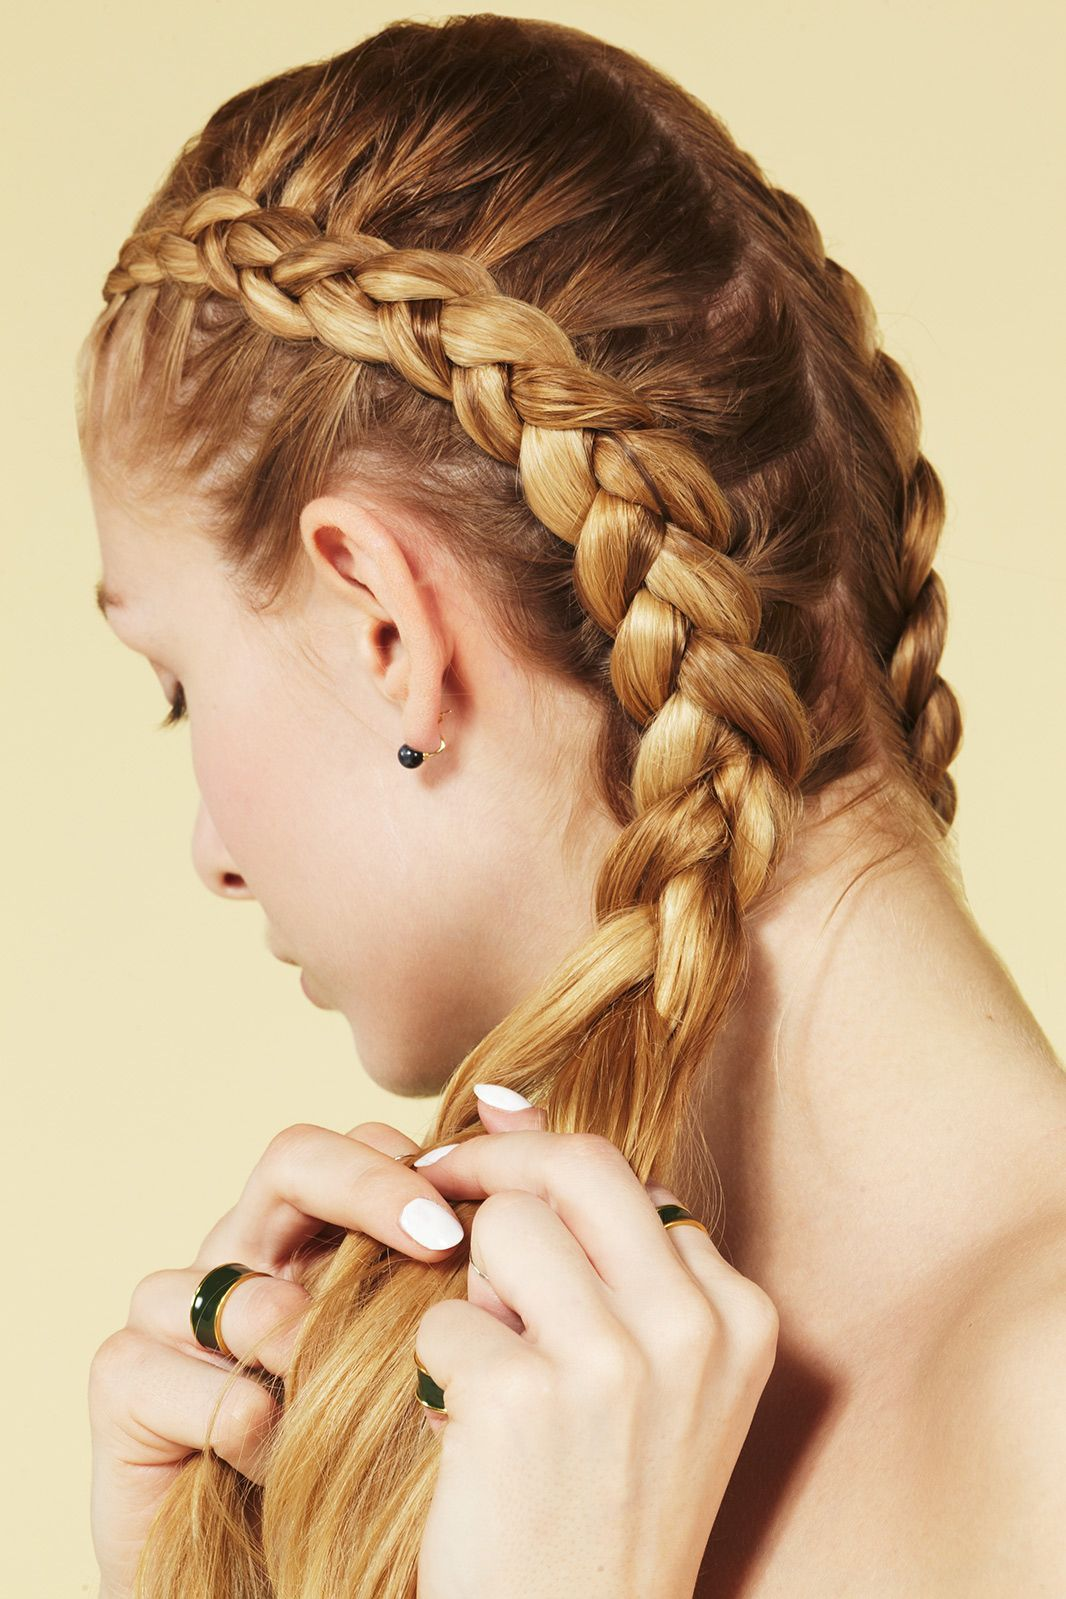 5 Braids You HAVEN'T Seen Yet #refinery29 http://www.refinery29.com/five-different-braided-hairstyles#slide-8 With hair still damp, create a center part that goes all the way down the back of your head. (If you're worried about your style staying tight, add some gel, like TRESemmé Ultra Firm Control Tres Gel, to damp strands first.) Then, beginning at your hairline, start a three-strand braid, pulling in more hair as you go. Only add hair from the side closest to your middle part, and bring…